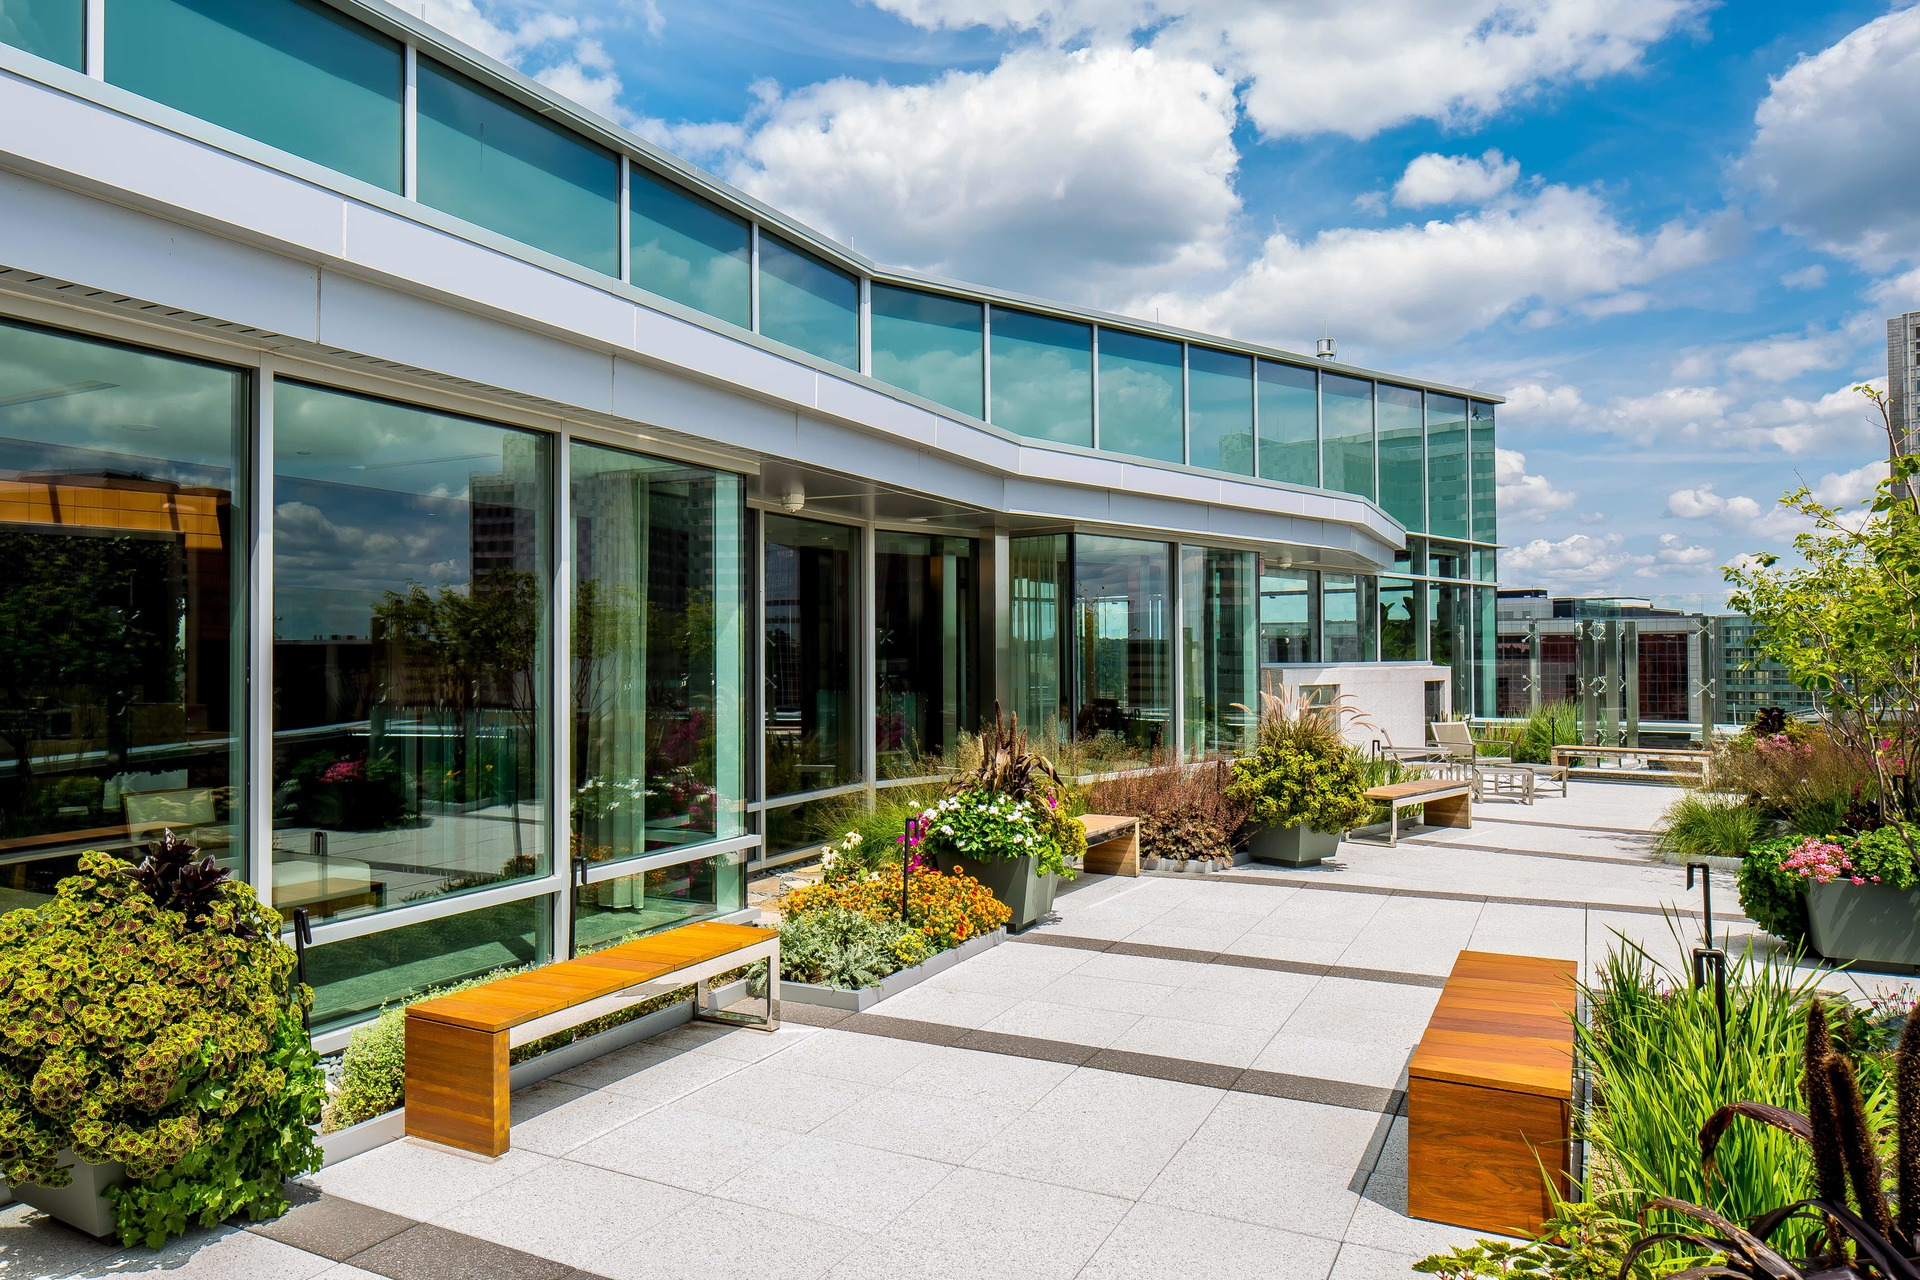 Bright and colorful plants located on the rooftop of the Dan Abraham Healthy Living Center in Rochester, Minnesota.